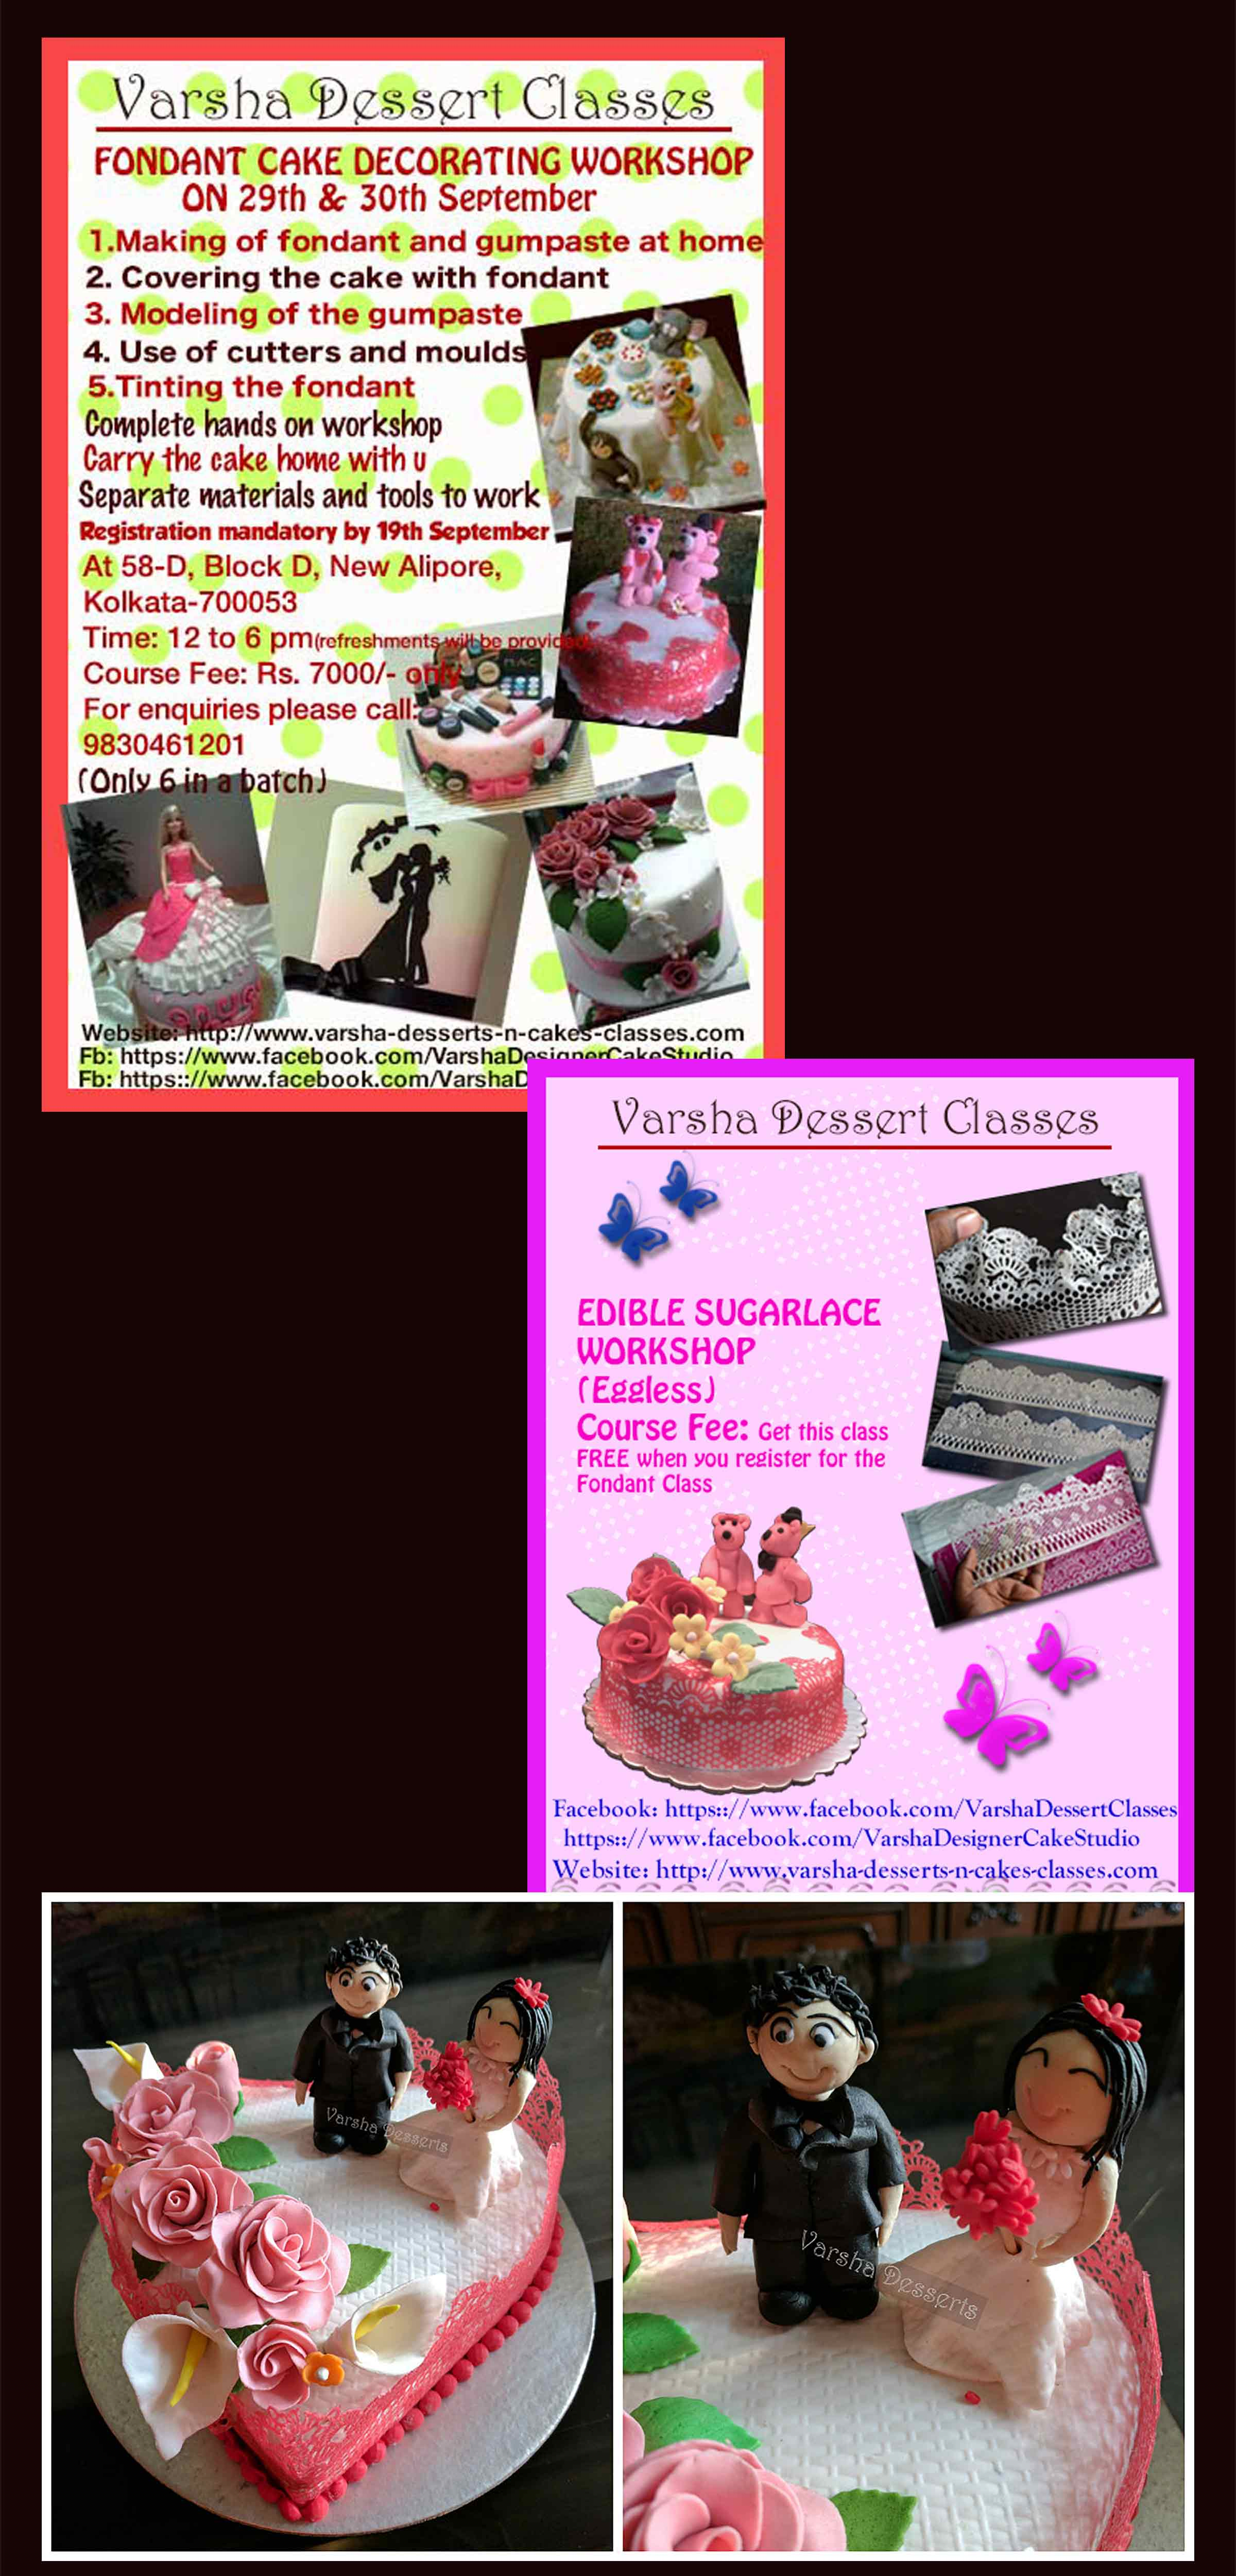 FONDANT WORKSHOP ON 29TH & 30TH SEPTEMBE